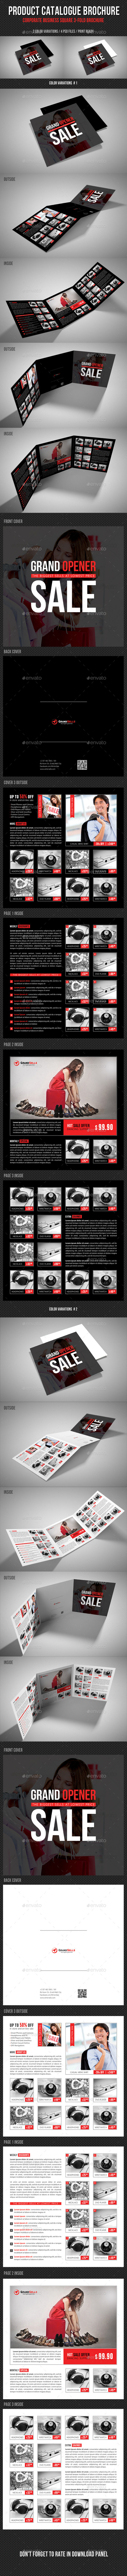 Product Catalogue Square 3-Fold Brochure V02 - Brochures Print Templates